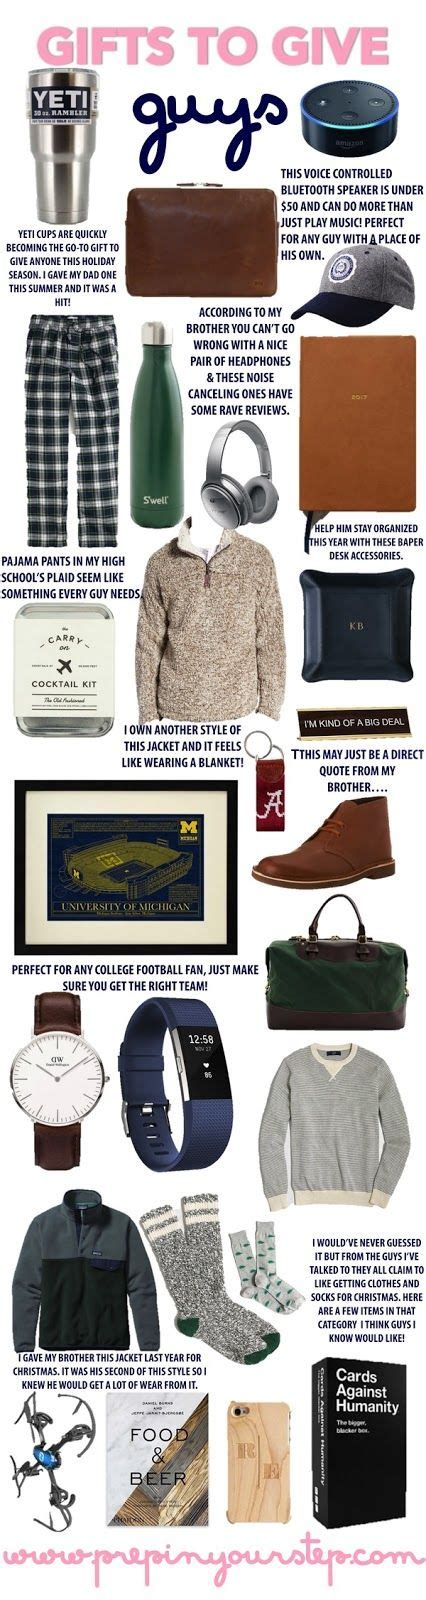 christmas ideas for boyfriends who have everything gifts for boyfriend who everything timeslifestyle